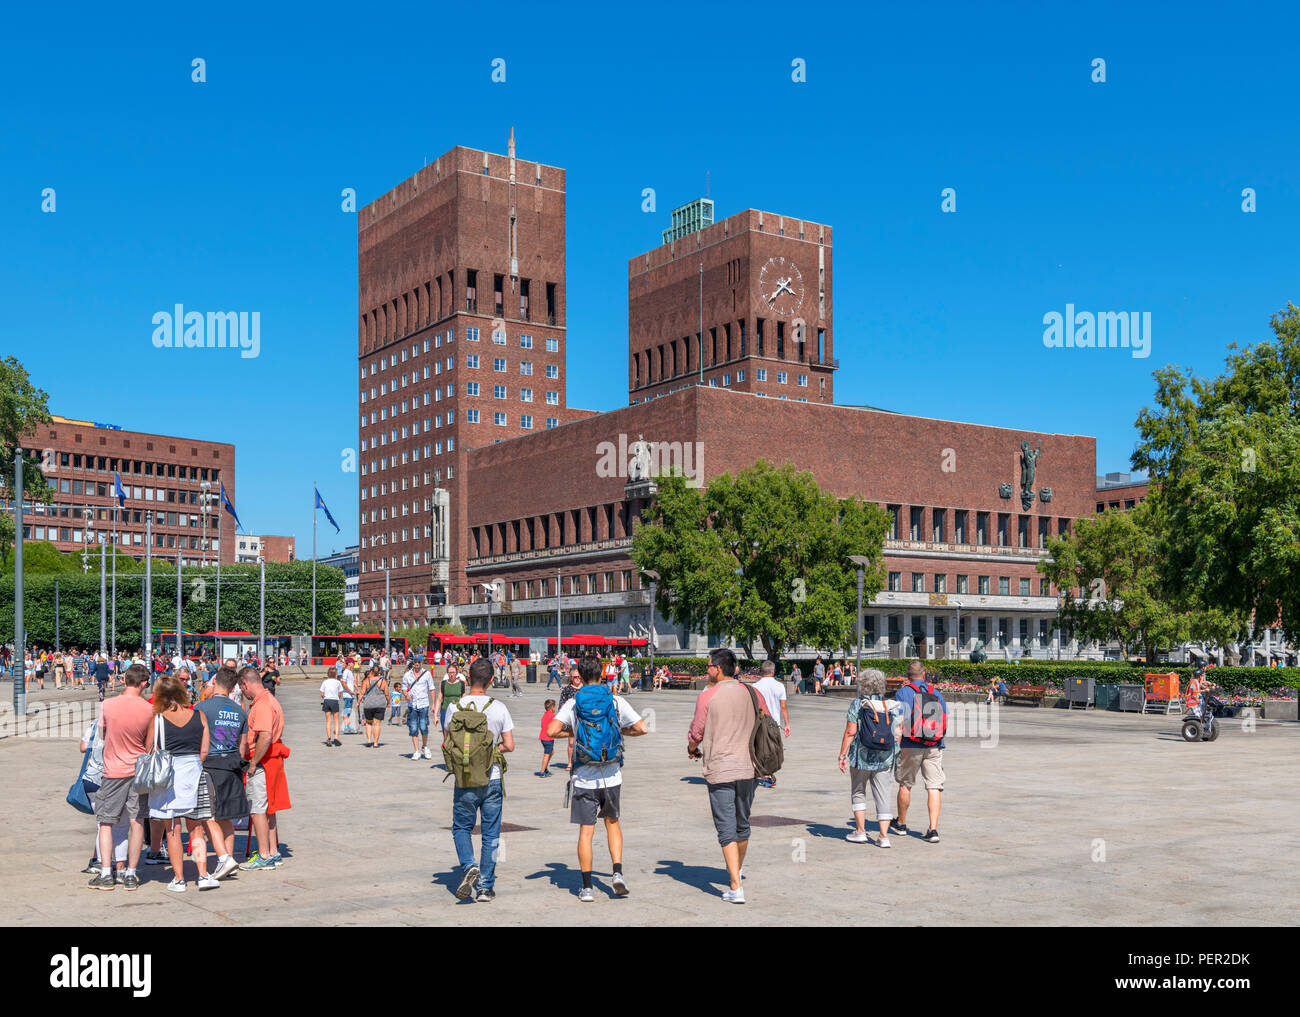 Rådhusplassen and City Hall (Rådhus), Aker Brygge, Oslo, Norway - Stock Image